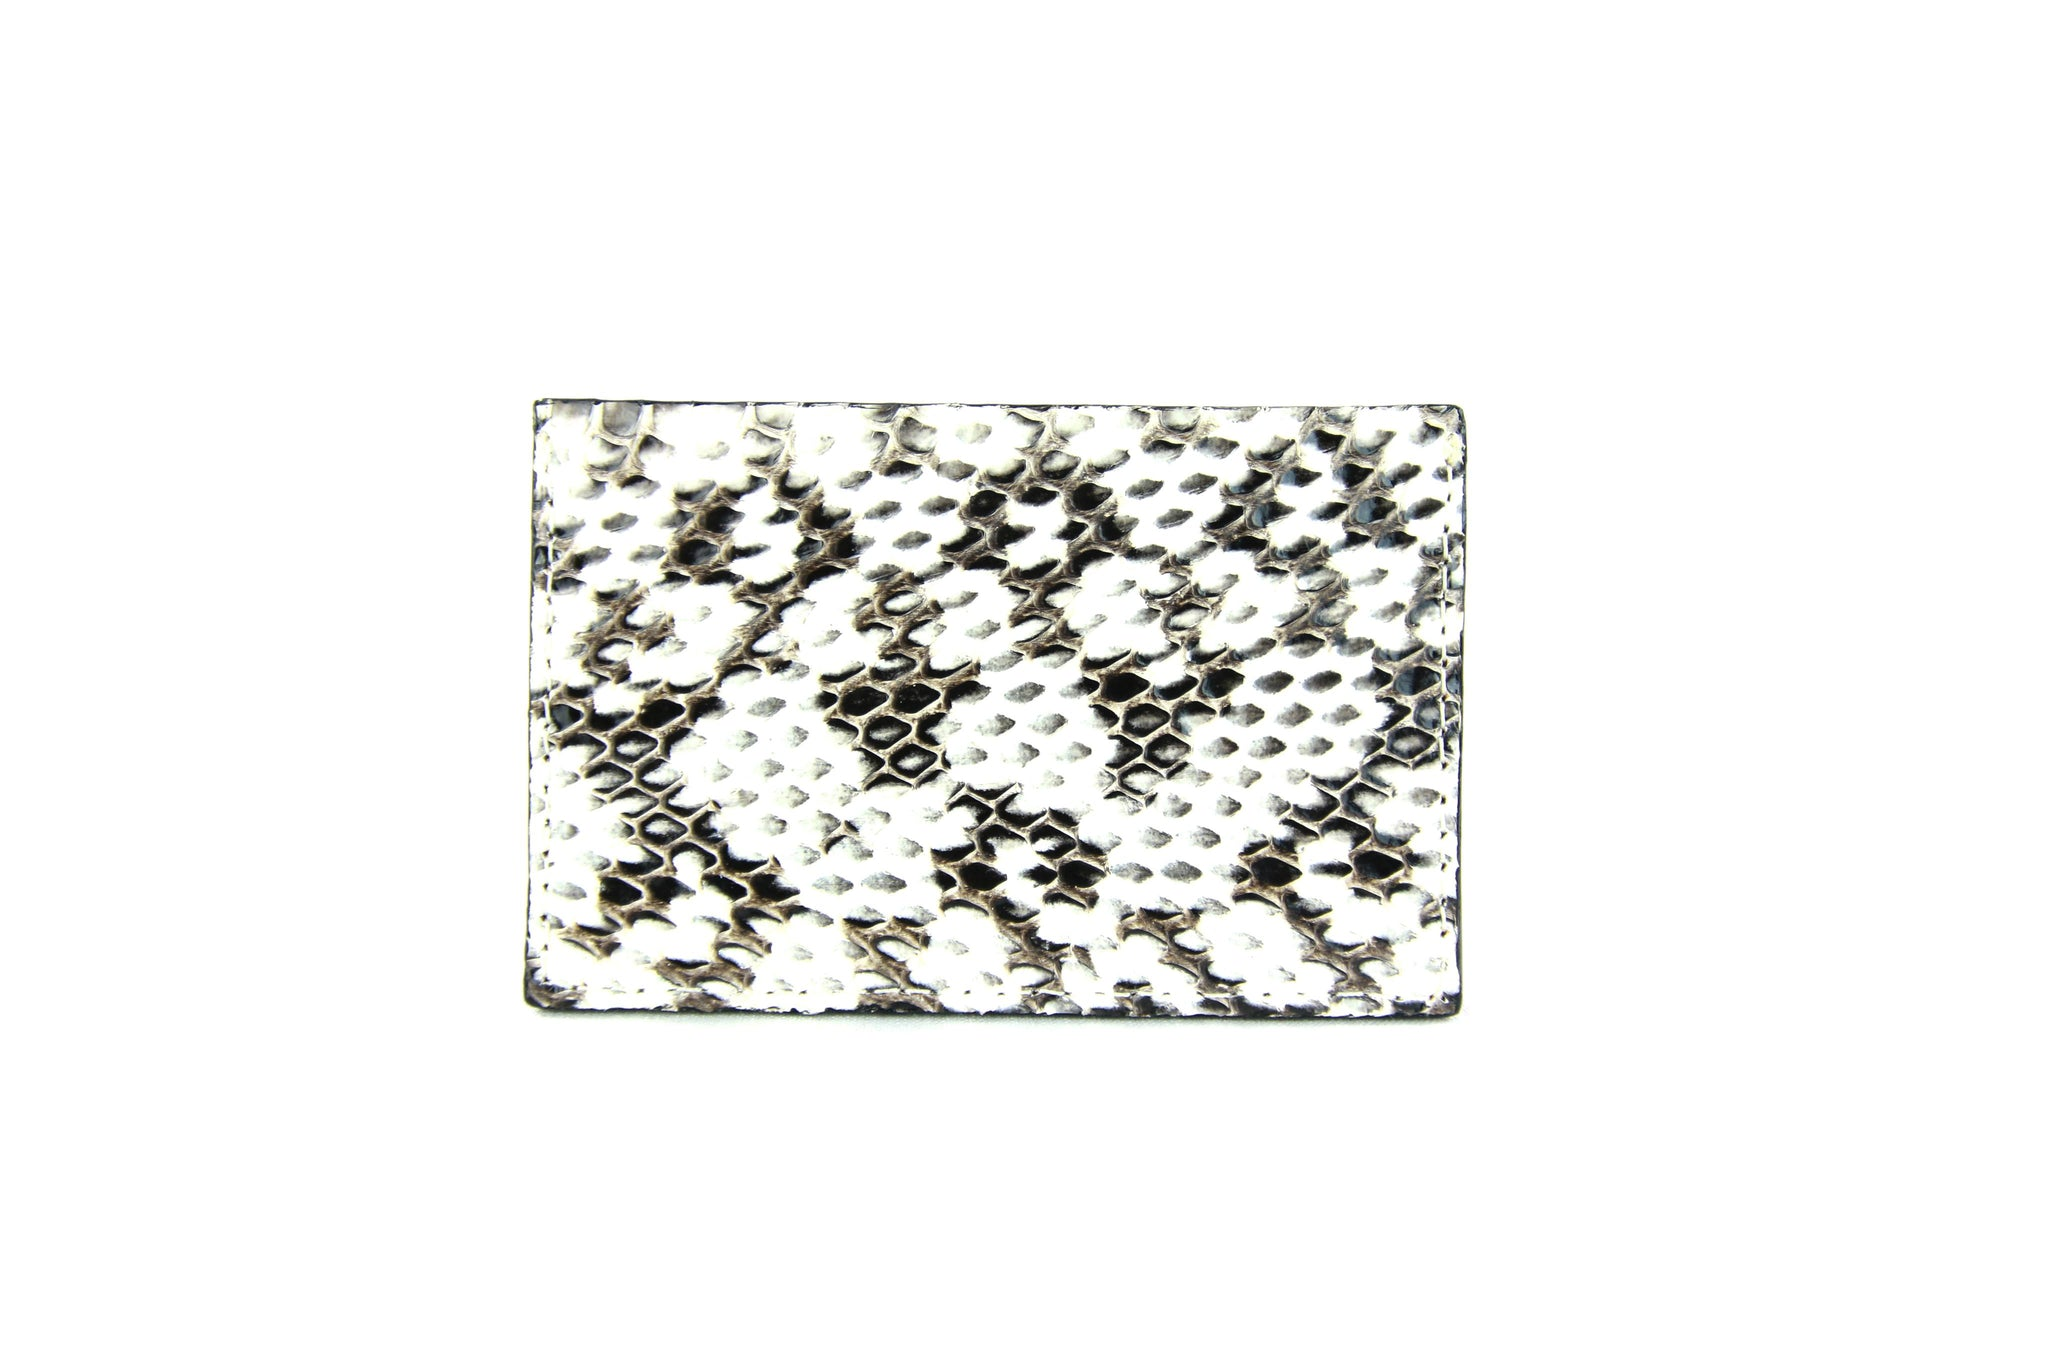 Wallet, White & Black Viper Snake, Italian leather